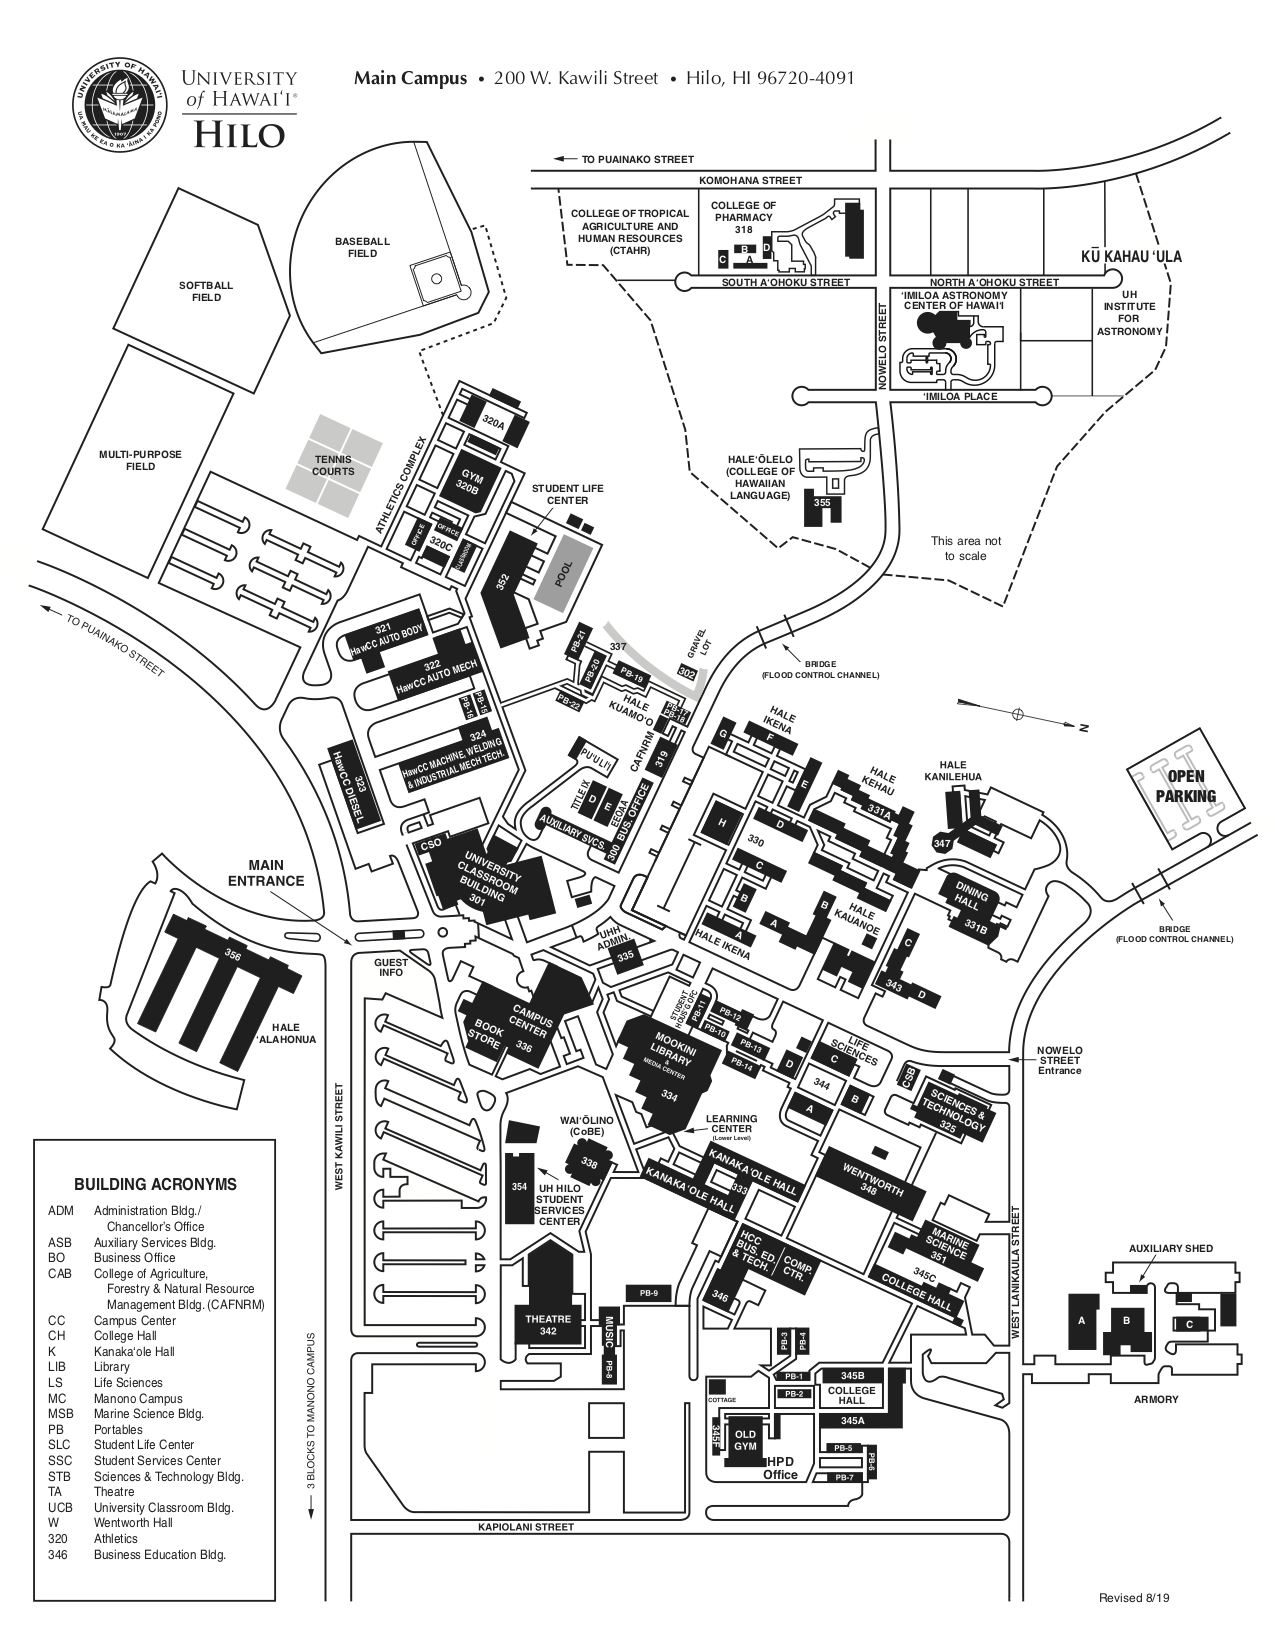 Campus Maps on hawaii campus map, ma campus map, jd campus map, main campus map, fh campus map, uw campus map, u of h map, uhv campus map, uhd campus map, unh campus map, st campus map, ge campus map, uhcl bayou building map, phoenix college campus map, morehead campus map, york college campus map, uk campus map, honolulu community college campus map, ul campus map, va campus map,